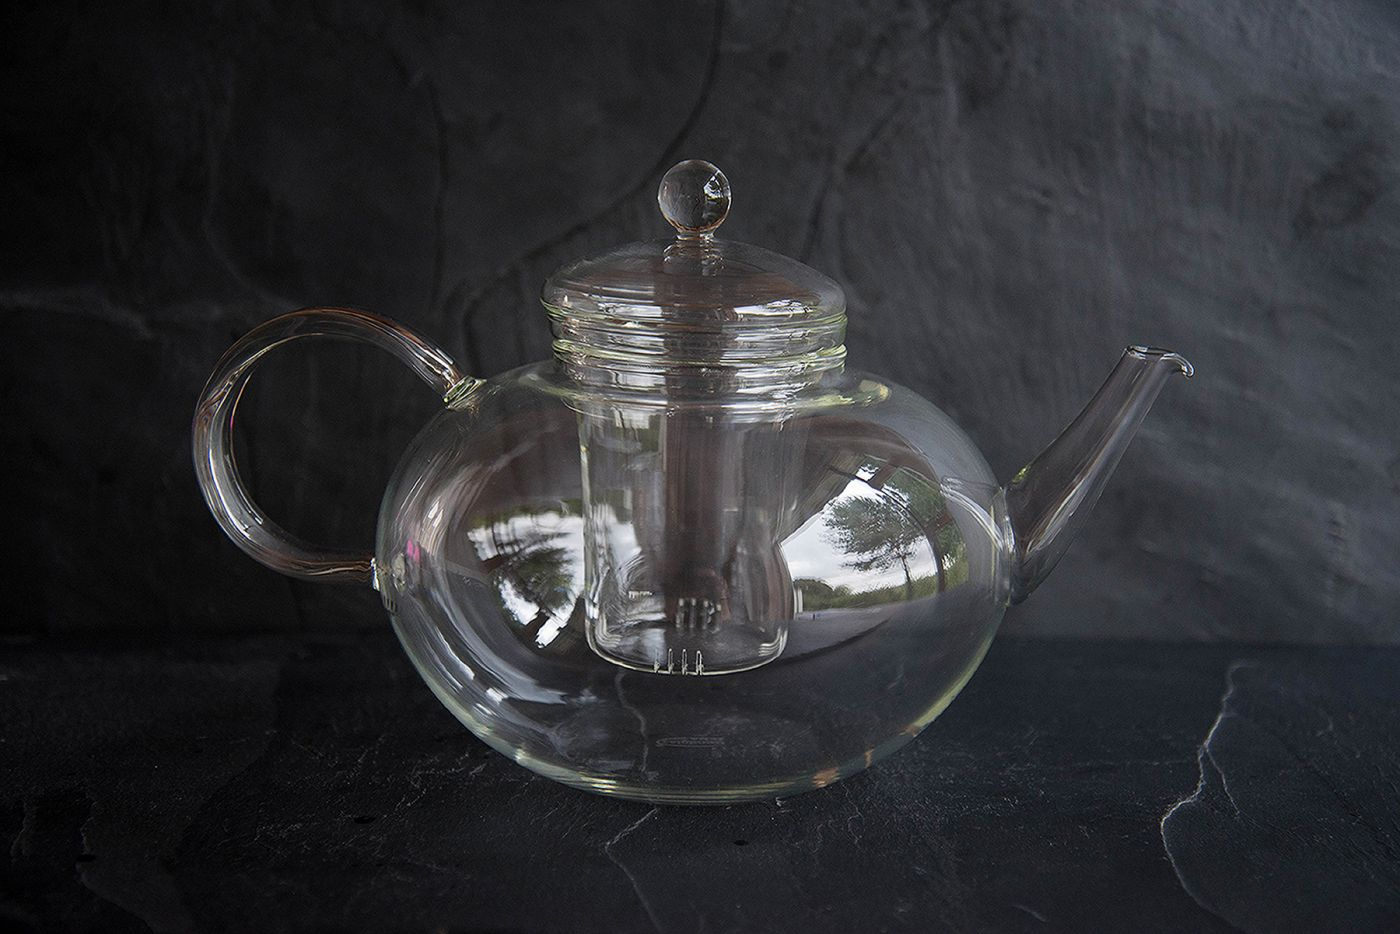 Big Thunderbolt Glass Teapot